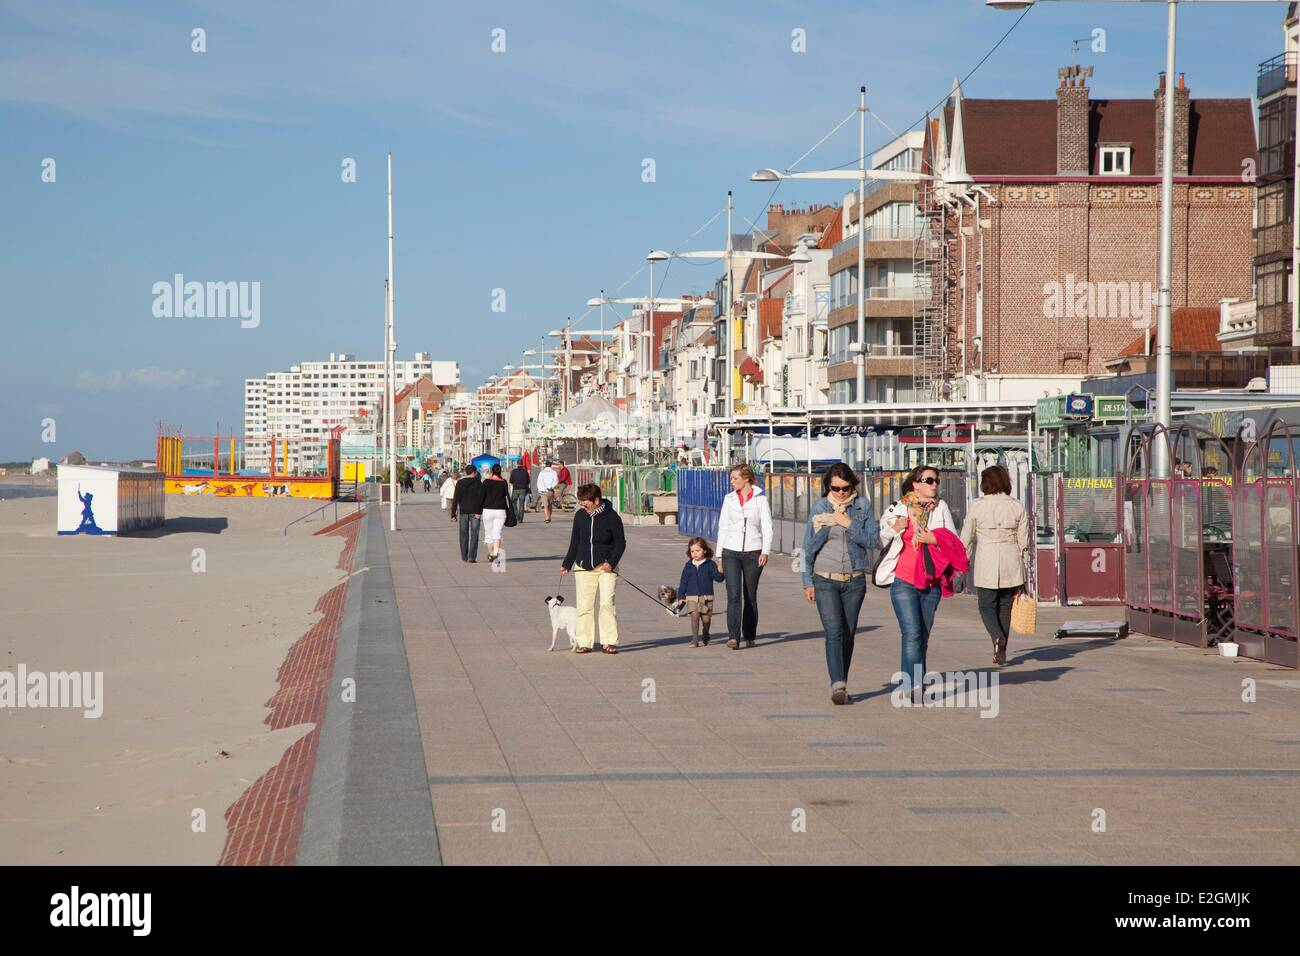 france nord cote d 39 opale dunkirk malo les bains walkers on promenade stock photo 70438219 alamy. Black Bedroom Furniture Sets. Home Design Ideas